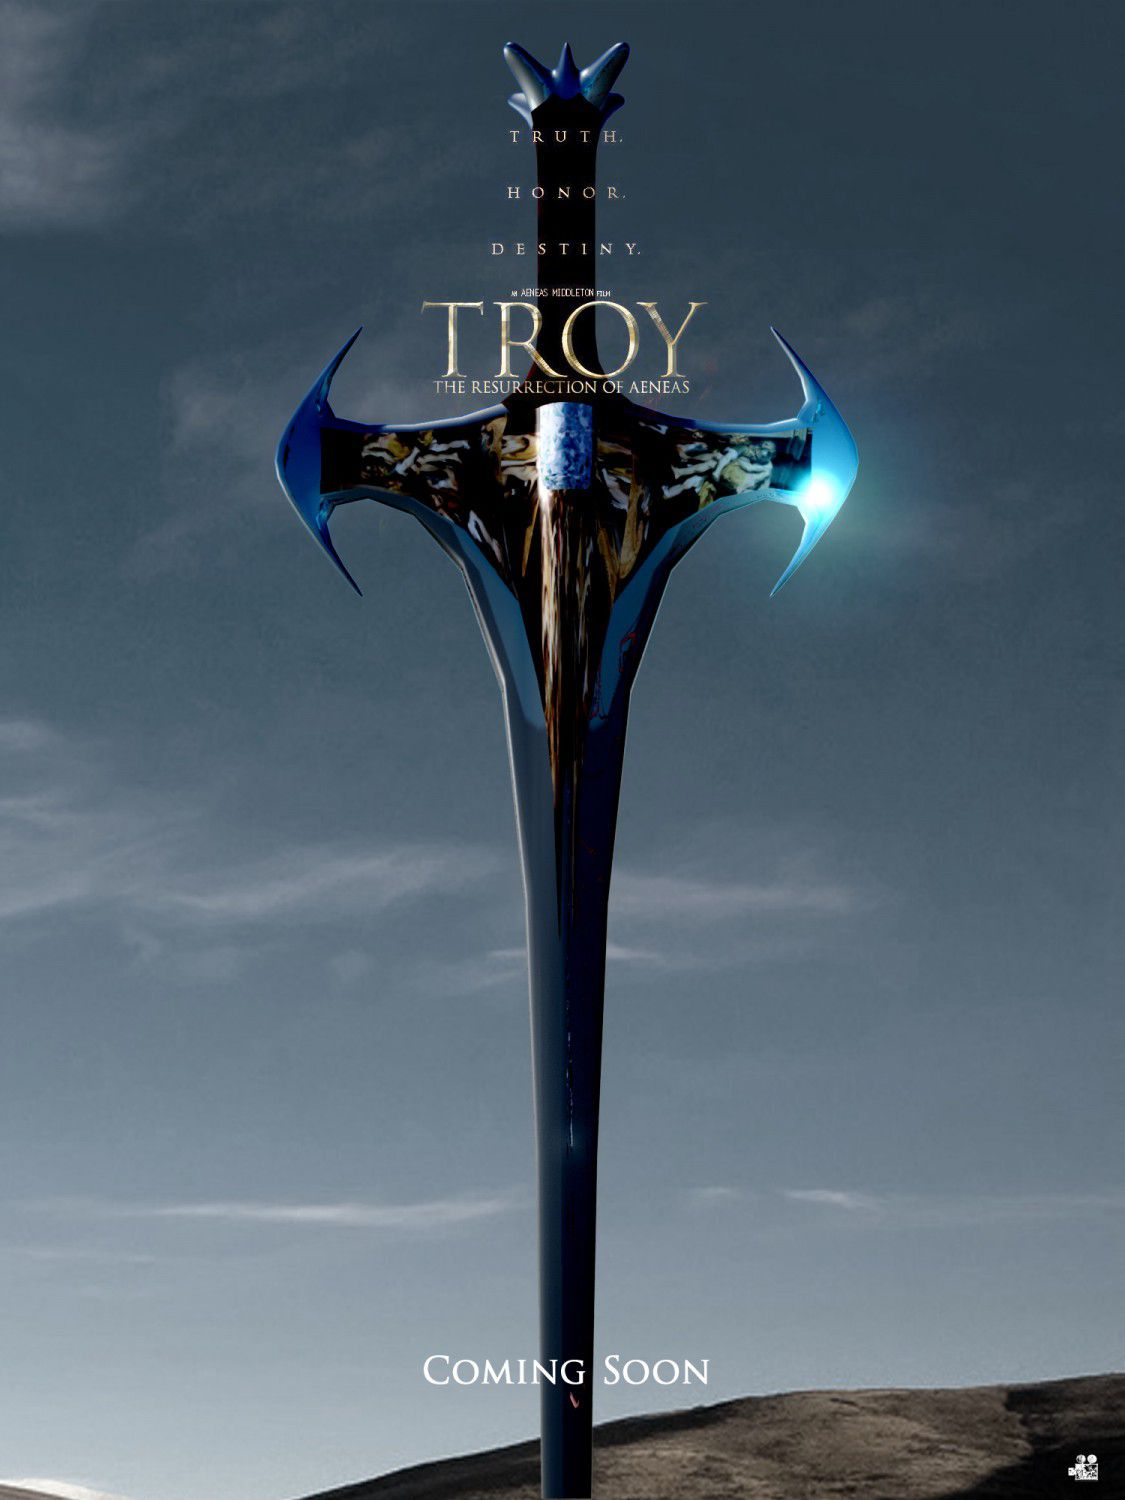 Troy the Resurrection of Aeneas - film poster - spada - sword